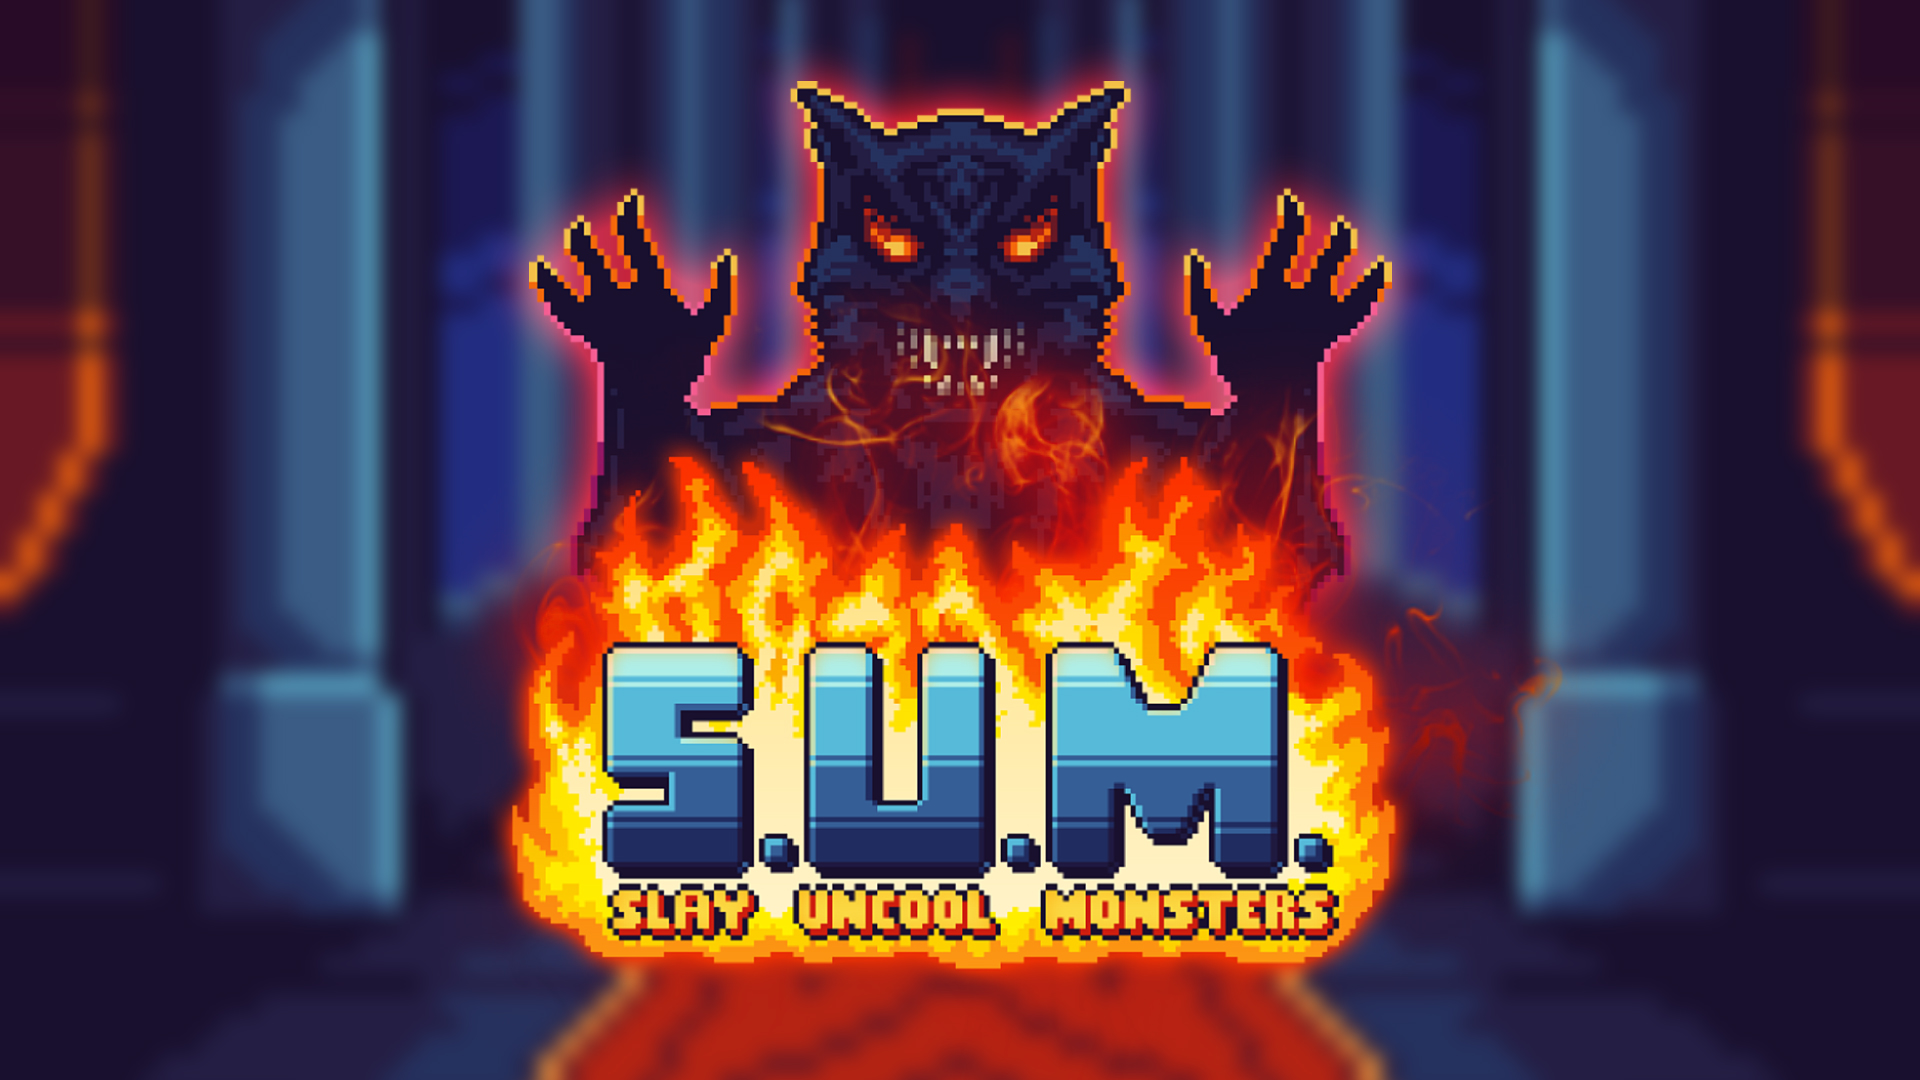 Read more about the article Slay Uncool Monsters – S.U.M